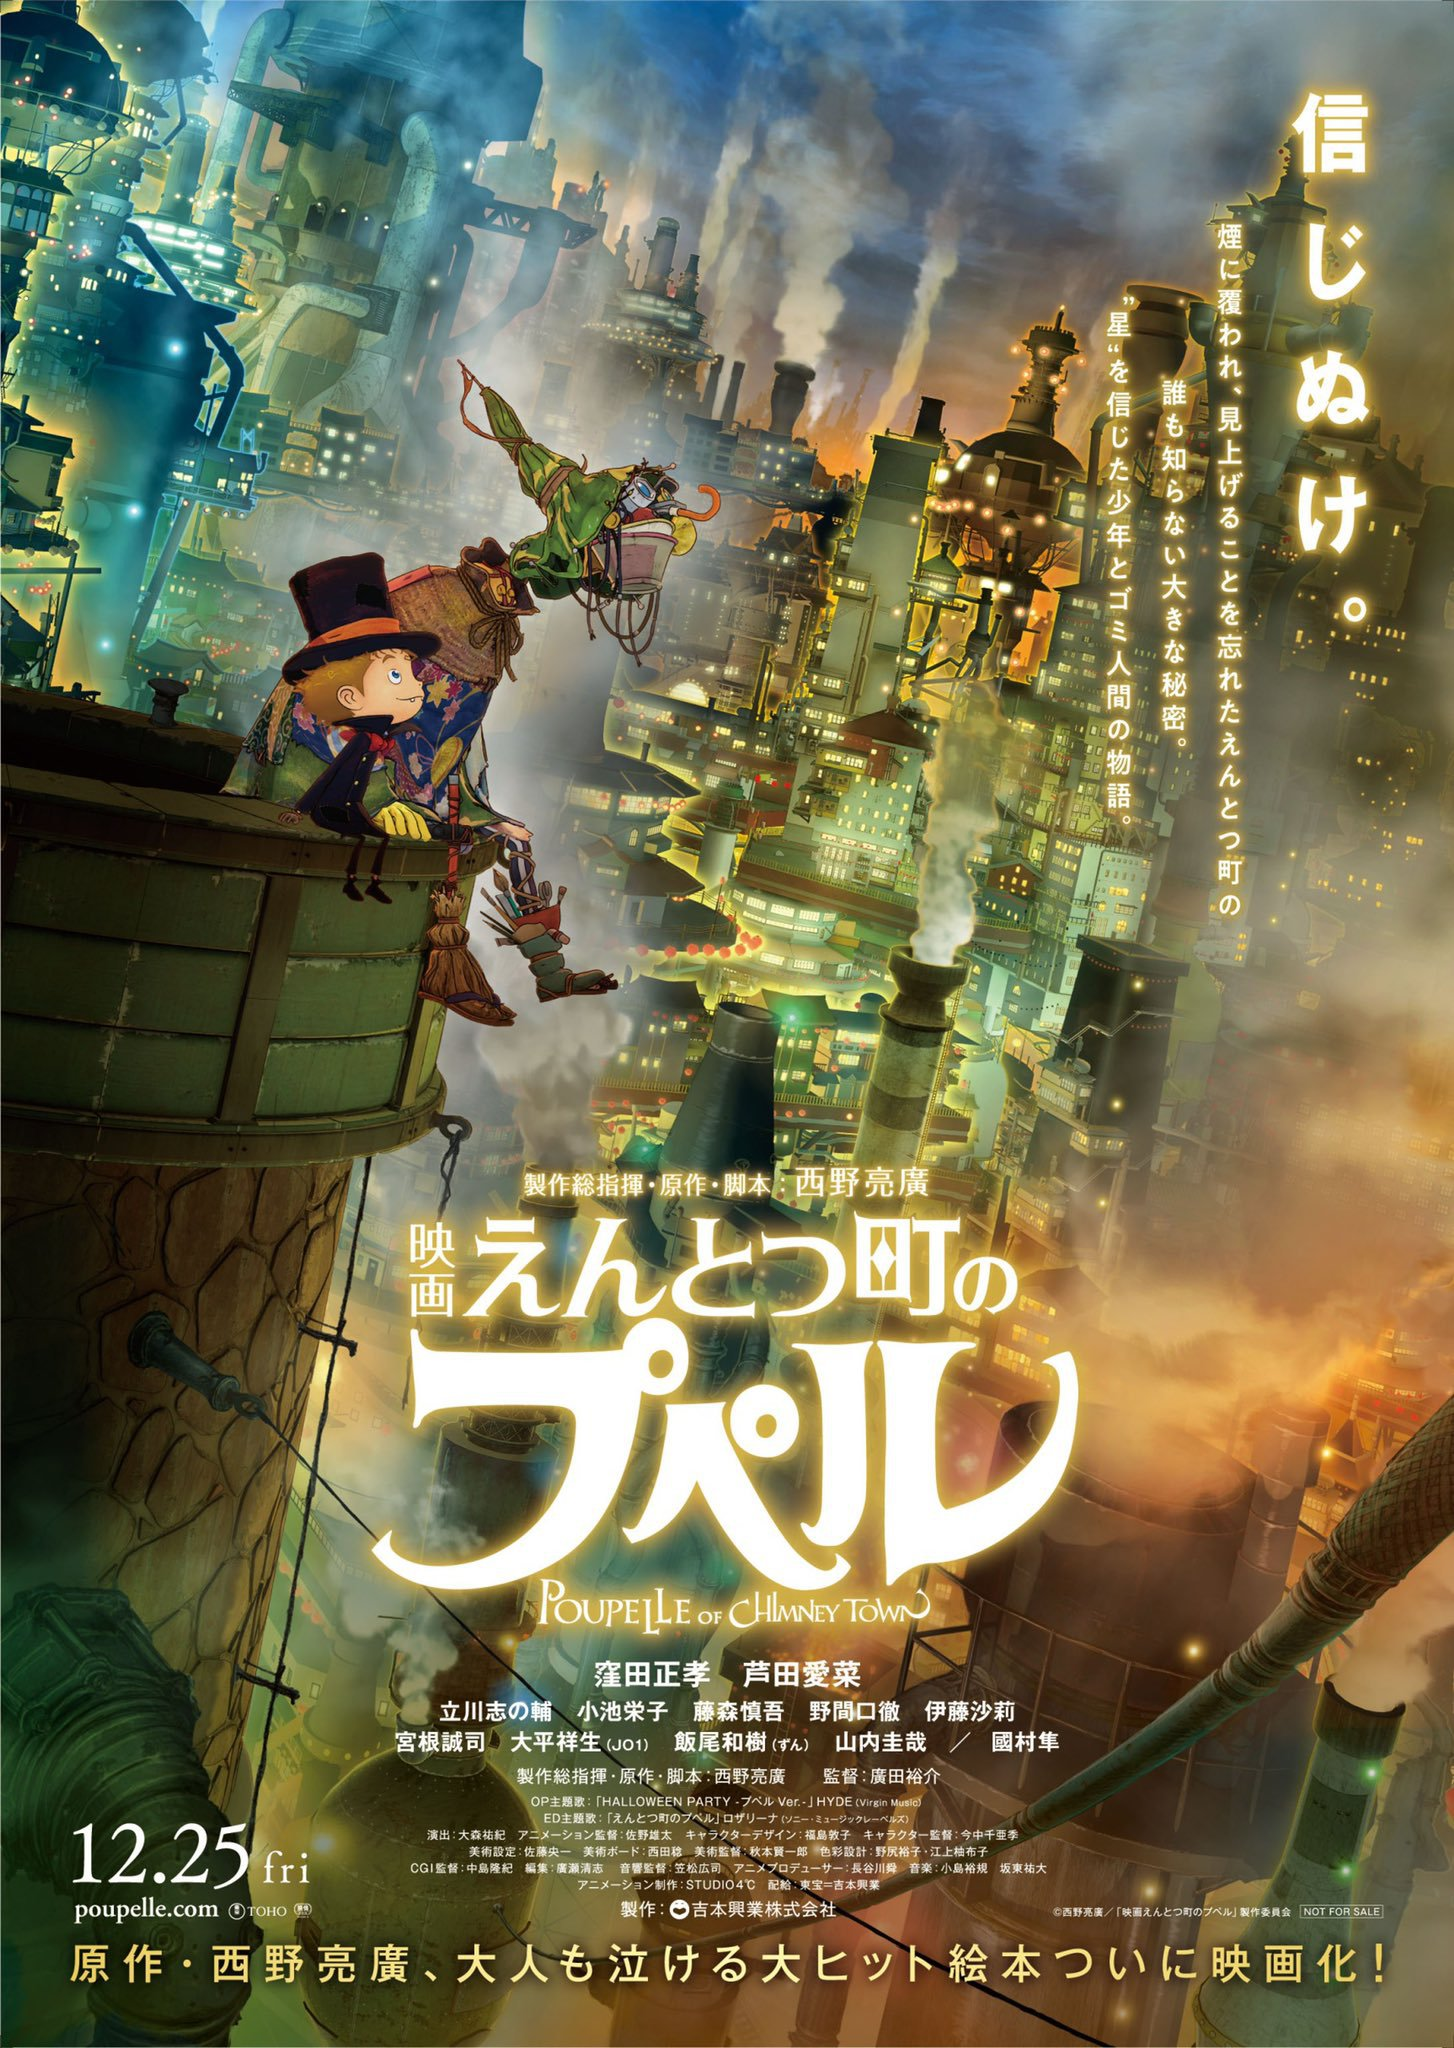 Japan Academy Film Prize 2021 - Poupelle of Chimney Town